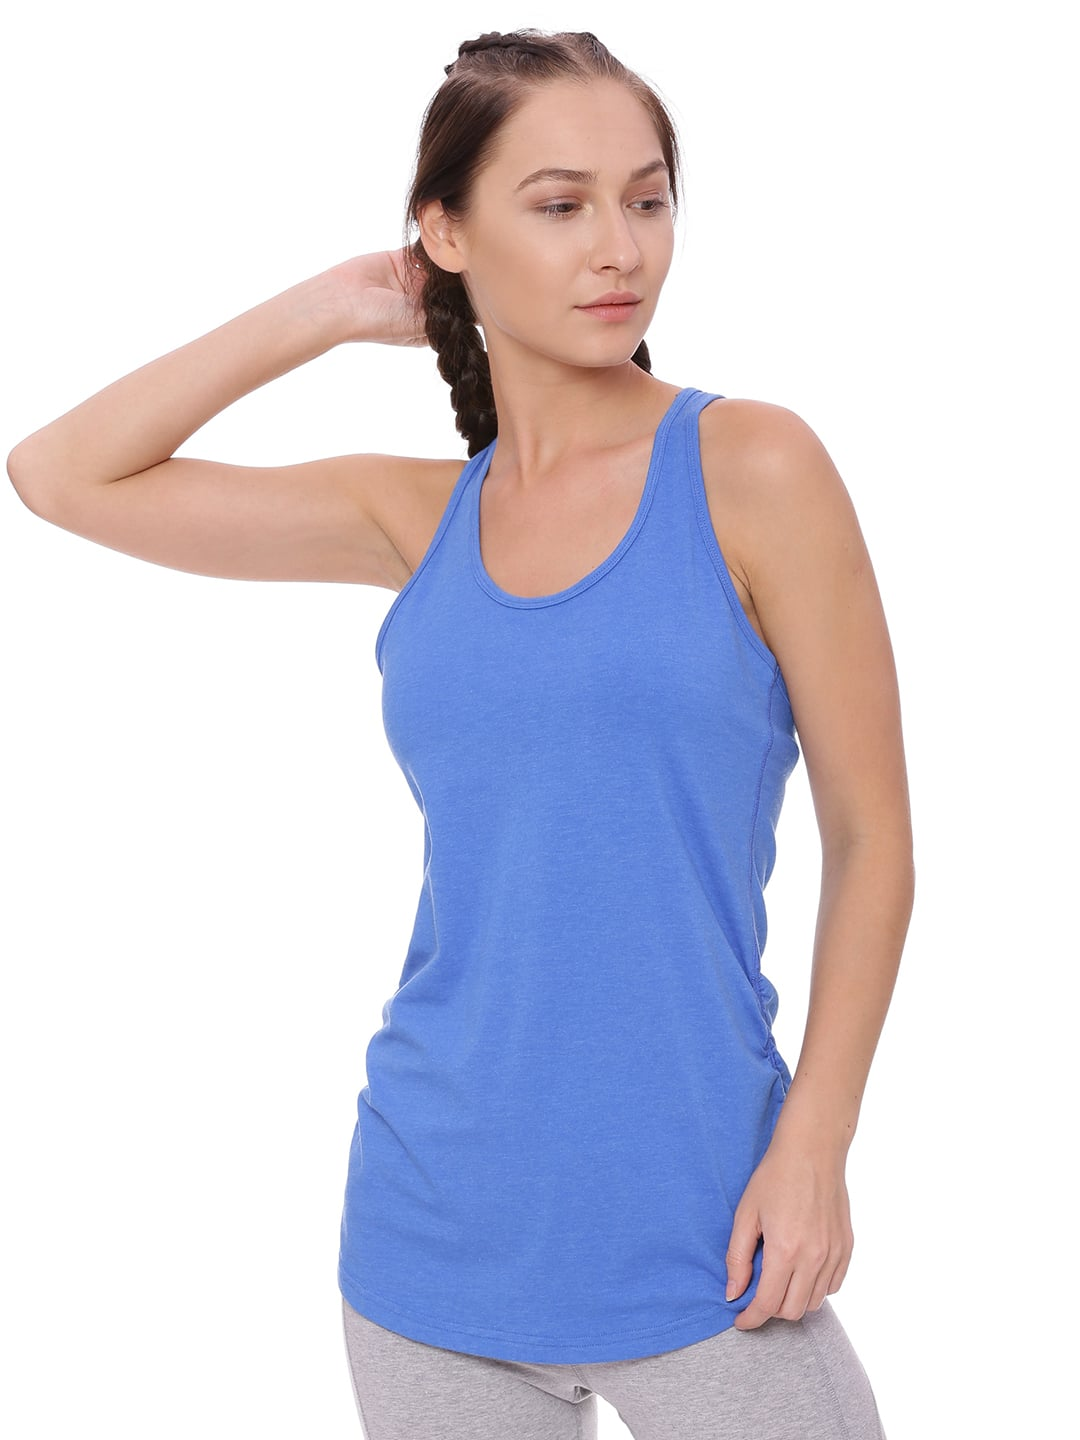 Super Comfortable and soft organic cotton Tank Top Colour Electric Blue Size XL